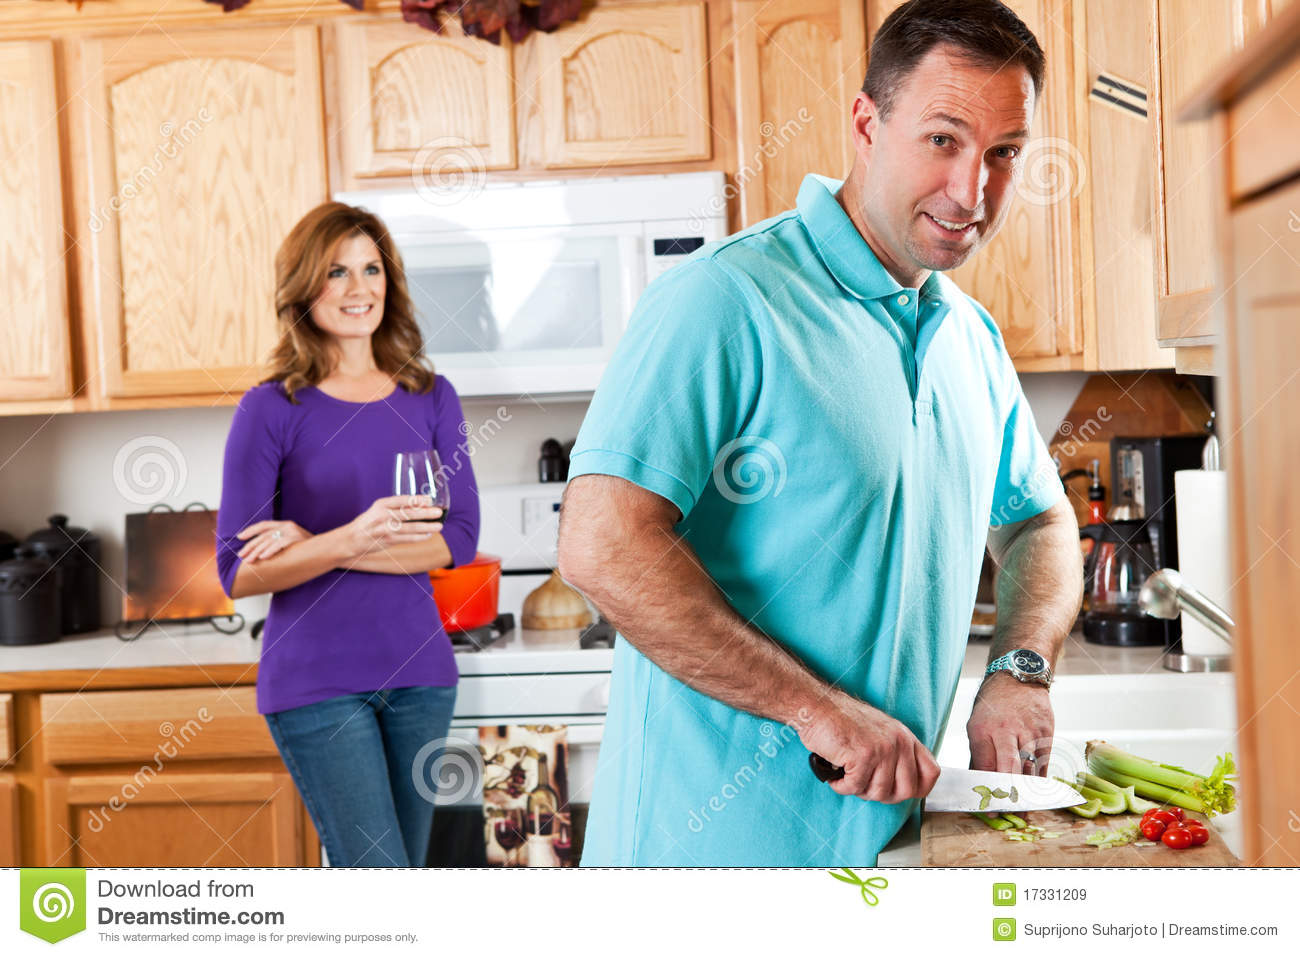 House Plans Magazine Couple In Kitchen Royalty Free Stock Images Image 17331209